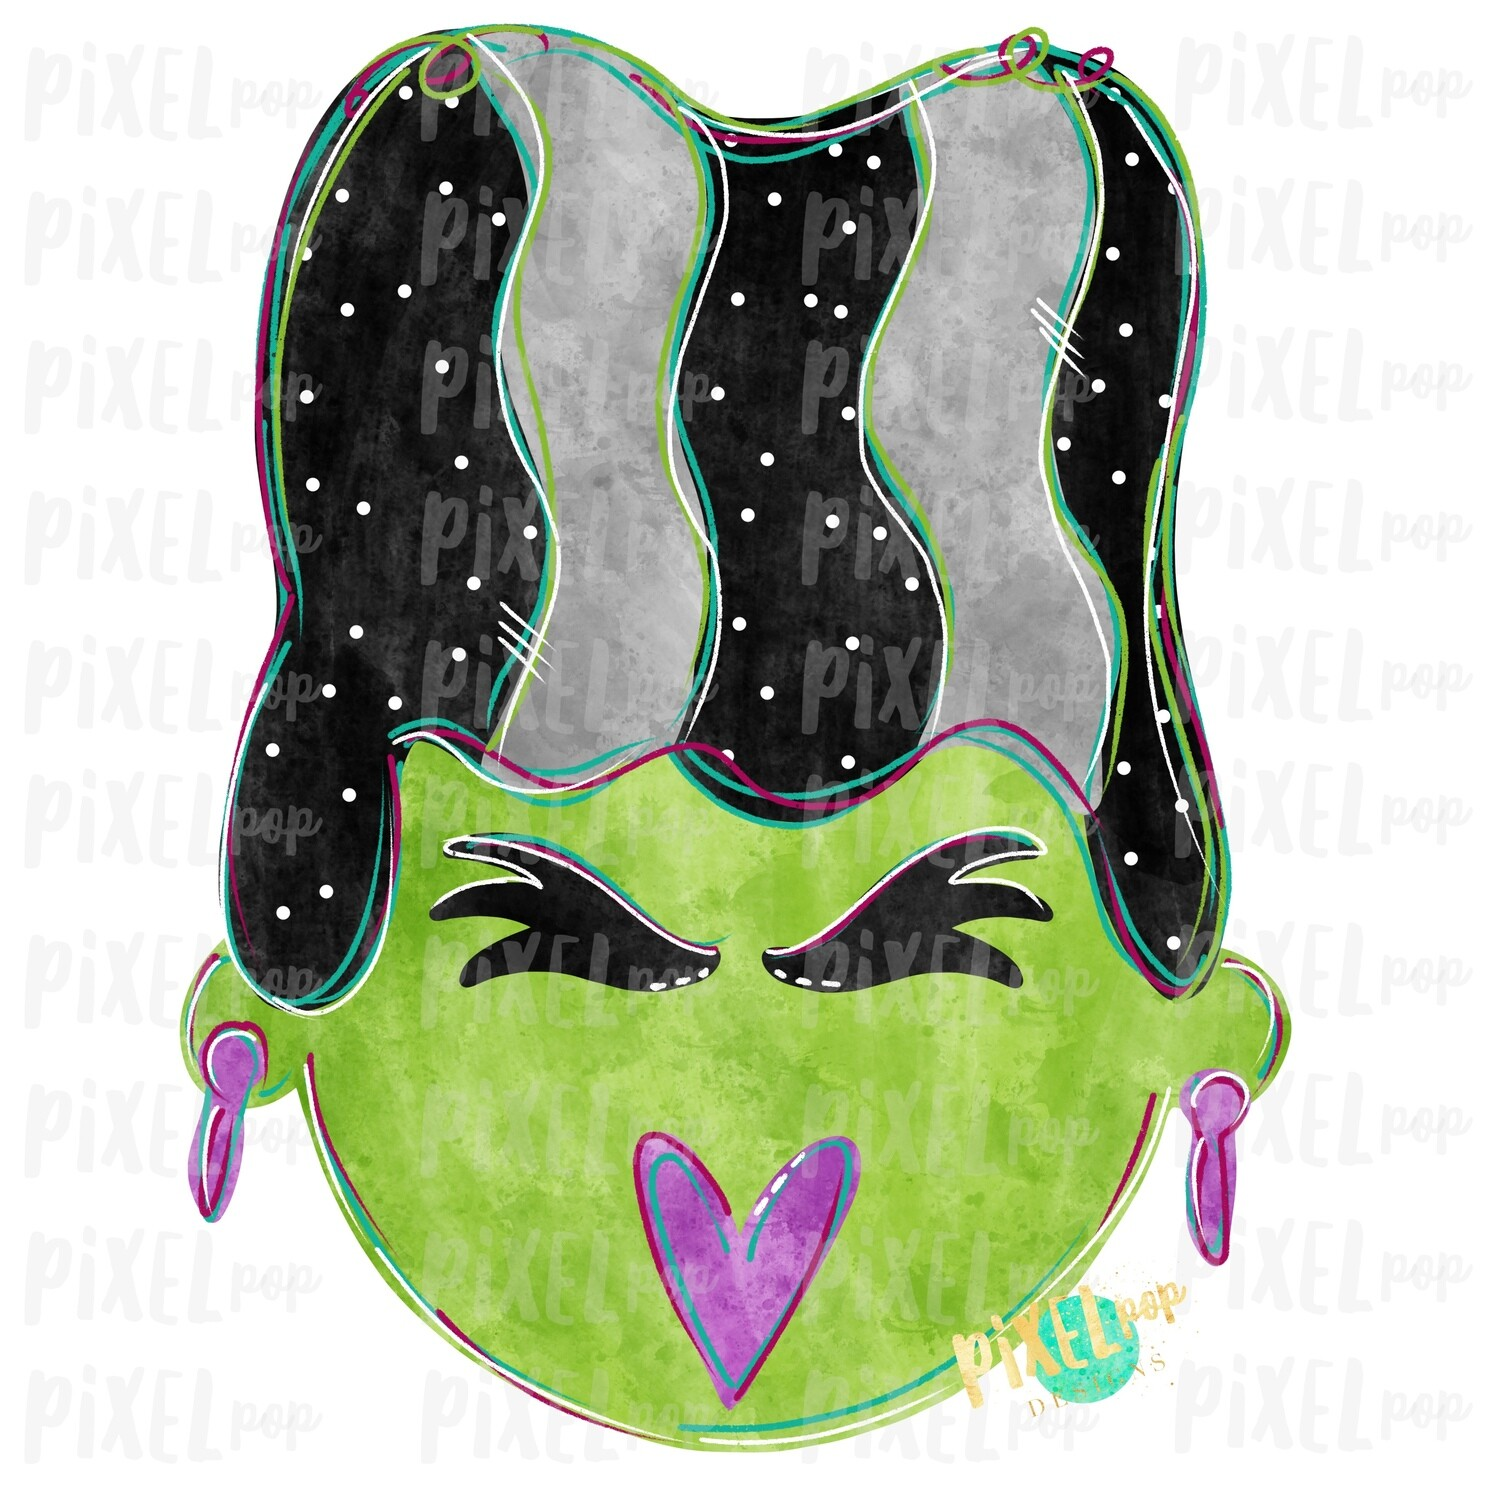 Bride of Frankenstein Digital Sublimation PNG | Hand Drawn Sublimation Design | Sublimation PNG | Digital Download | Printable Artwork | Art